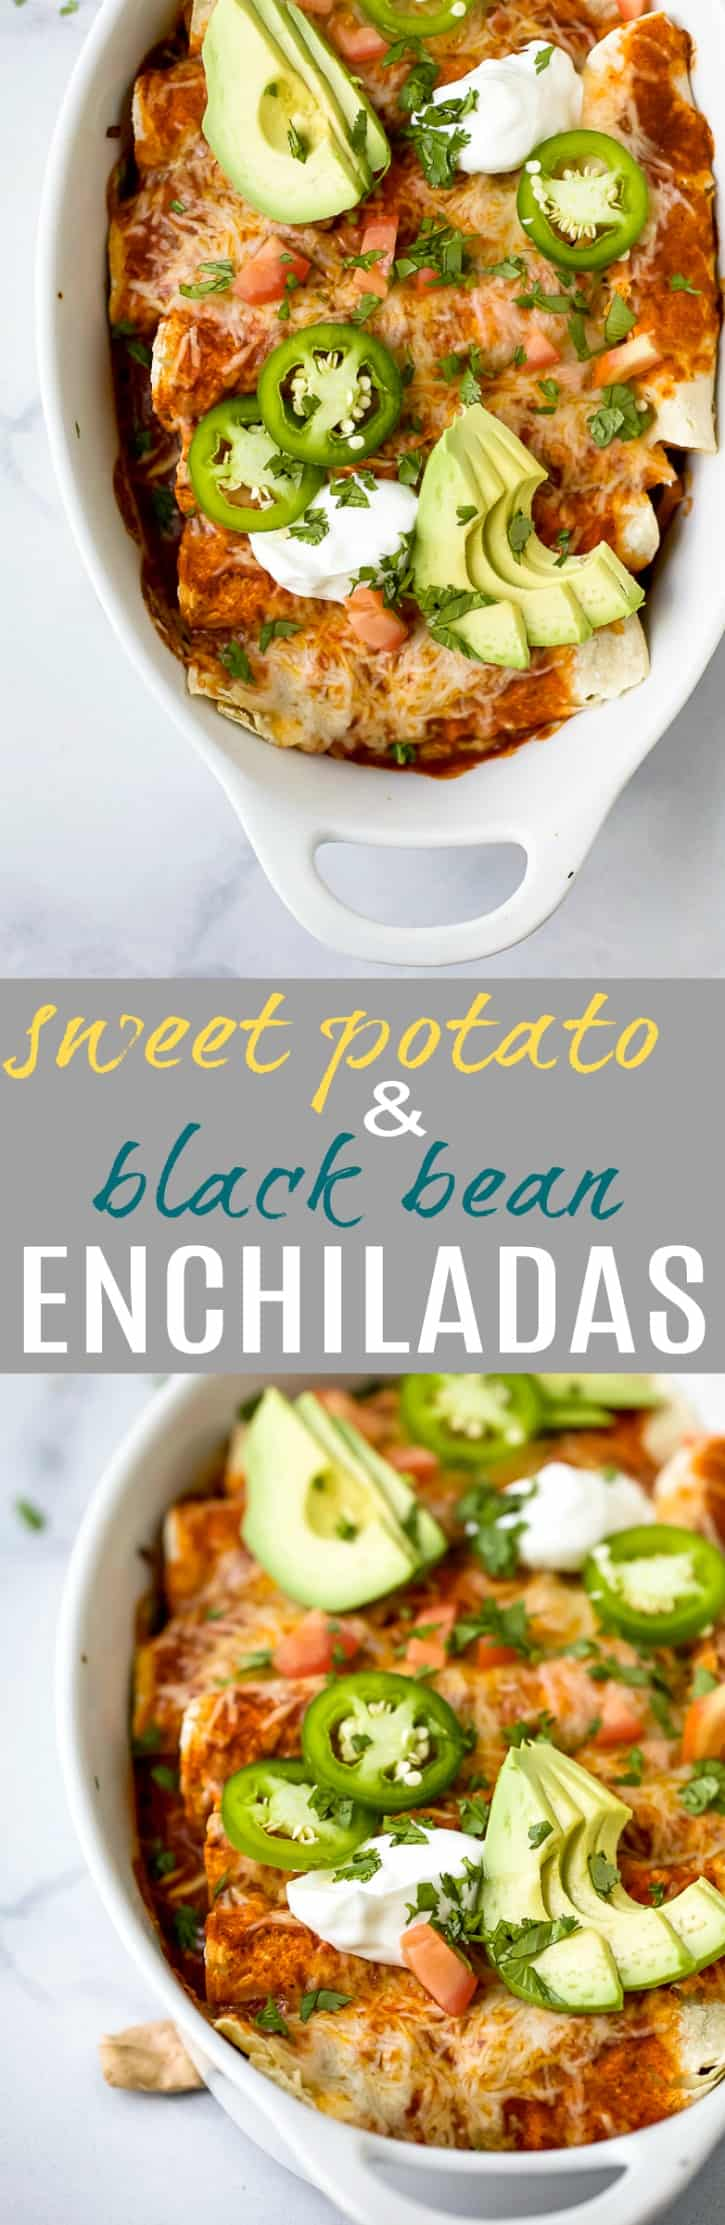 Sweet Potato Black Bean Enchiladas covered in smoky red chili sauce. Simple ingredients & lots of flavor make this vegetarian enchilada recipe a must try!